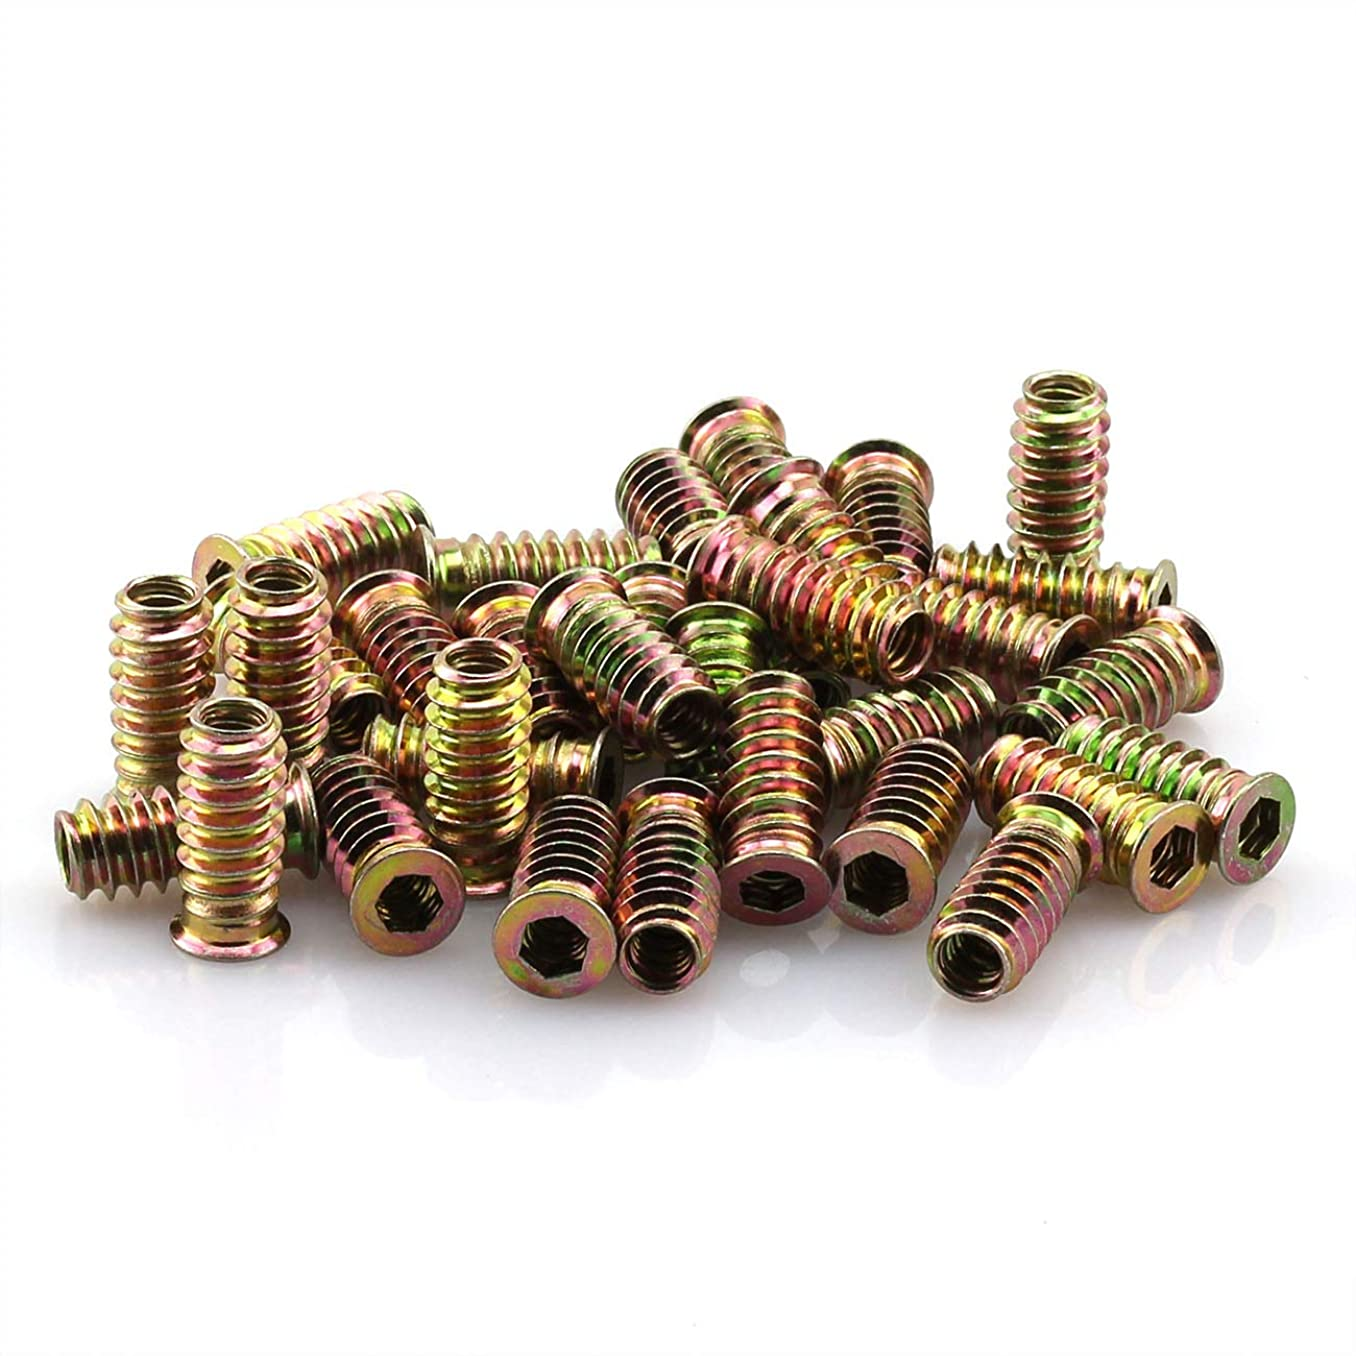 ZRM&E 35pcs 1/4 inch x 25mm Zinc Alloy Threaded Insert Nuts with Hex-Flanged Washer for Wood Hex Drive Head Screw-in Type Furniture Embedded Screw Plug